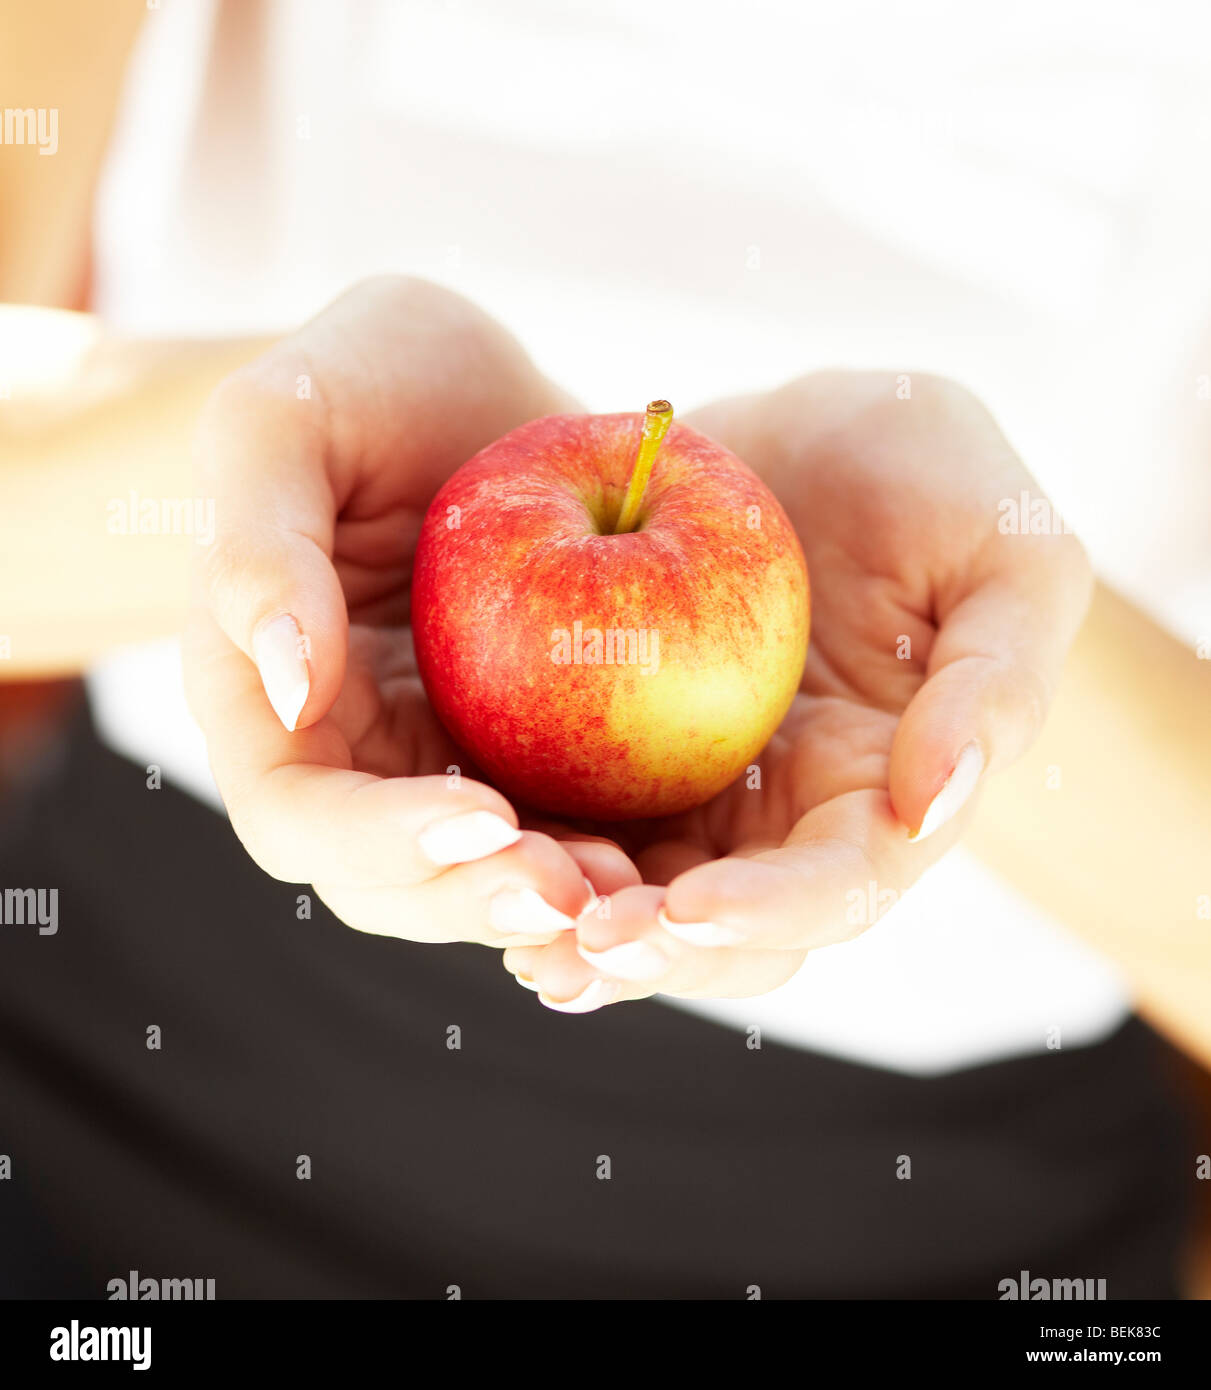 Close up of person holding apple - Stock Image